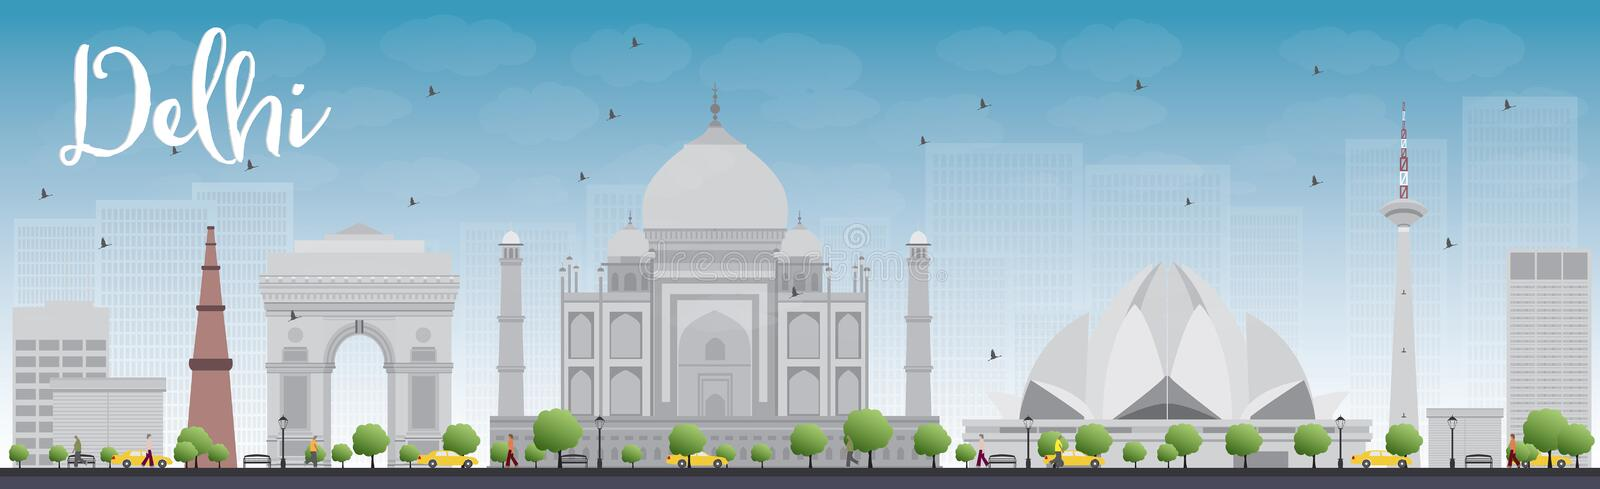 Delhi skyline with grey landmarks and blue sky. Vector illustration. Business travel and tourism concept with historic buildings. Image for presentation royalty free illustration